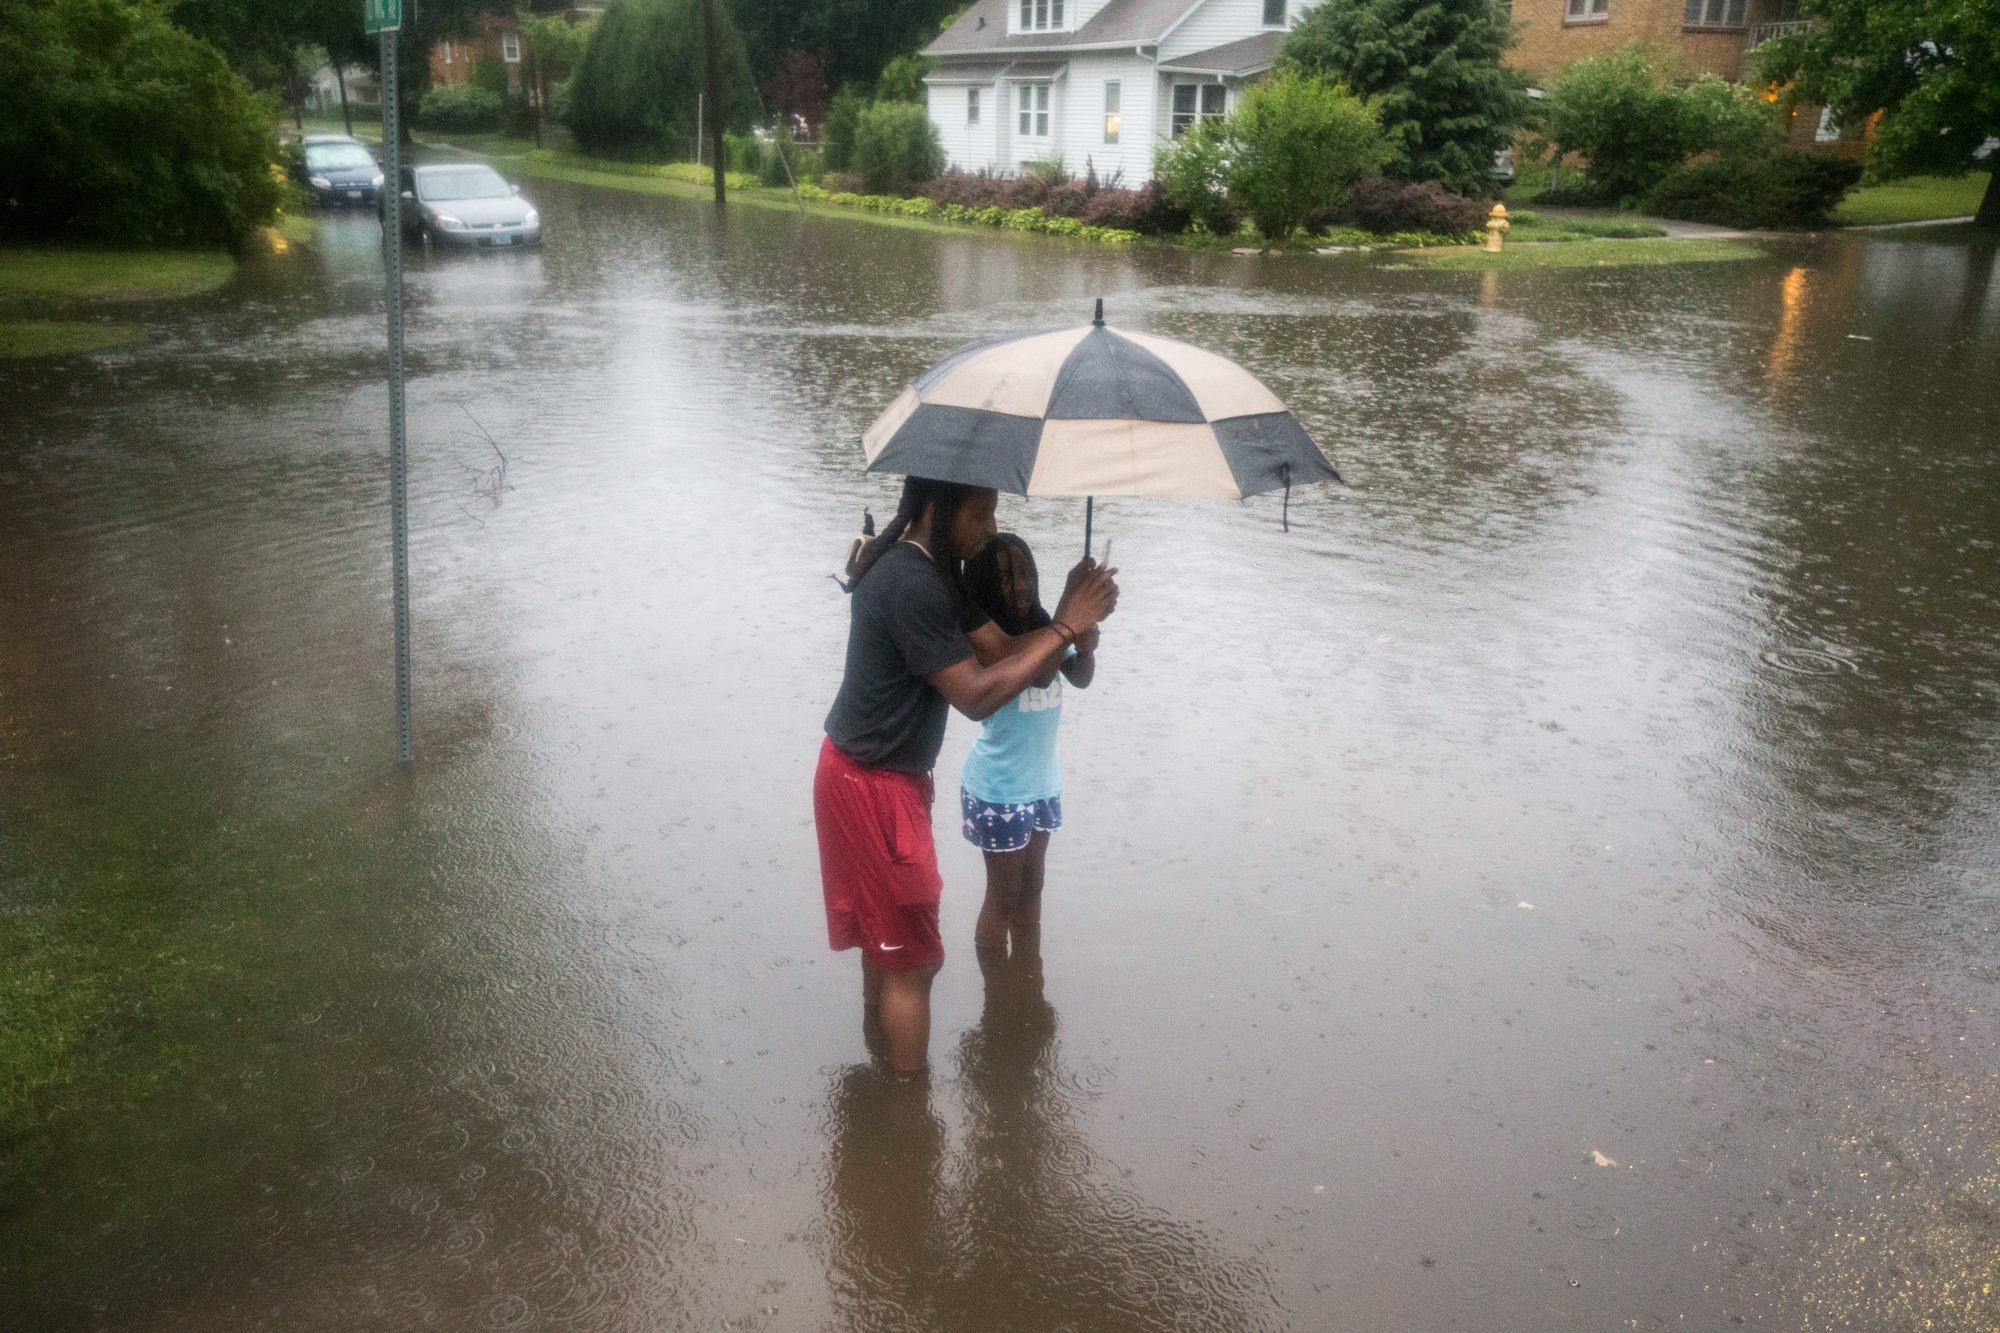 Matt Simpson, left, and his niece, Nikyia Marzette, pause from a walk to take pictures of ducks swimming in the flooded street on Monday, June 18, 2018, at the intersection of Van Wie Avenue and Hancock Street in Rockford. Heavy rains flooded parts of the city and Simpson was out checking for water damage at several residences he owns in the neighborhood. [SCOTT P. YATES/RRSTAR.COM STAFF]